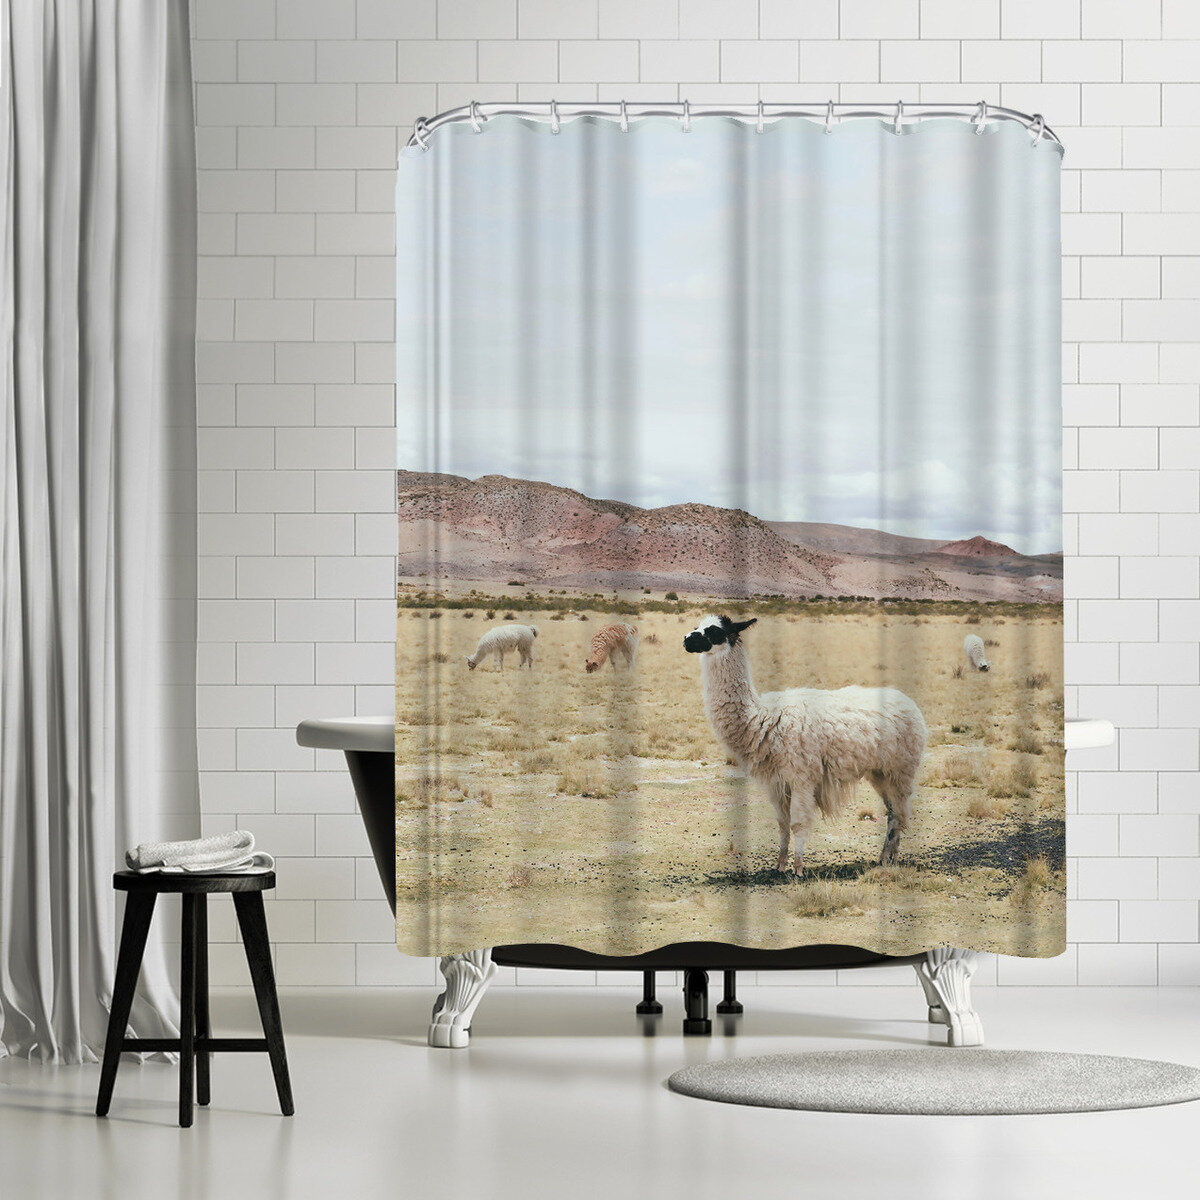 East Urban Home Sisi And Seb Alpaca Single Shower Curtain Wayfair